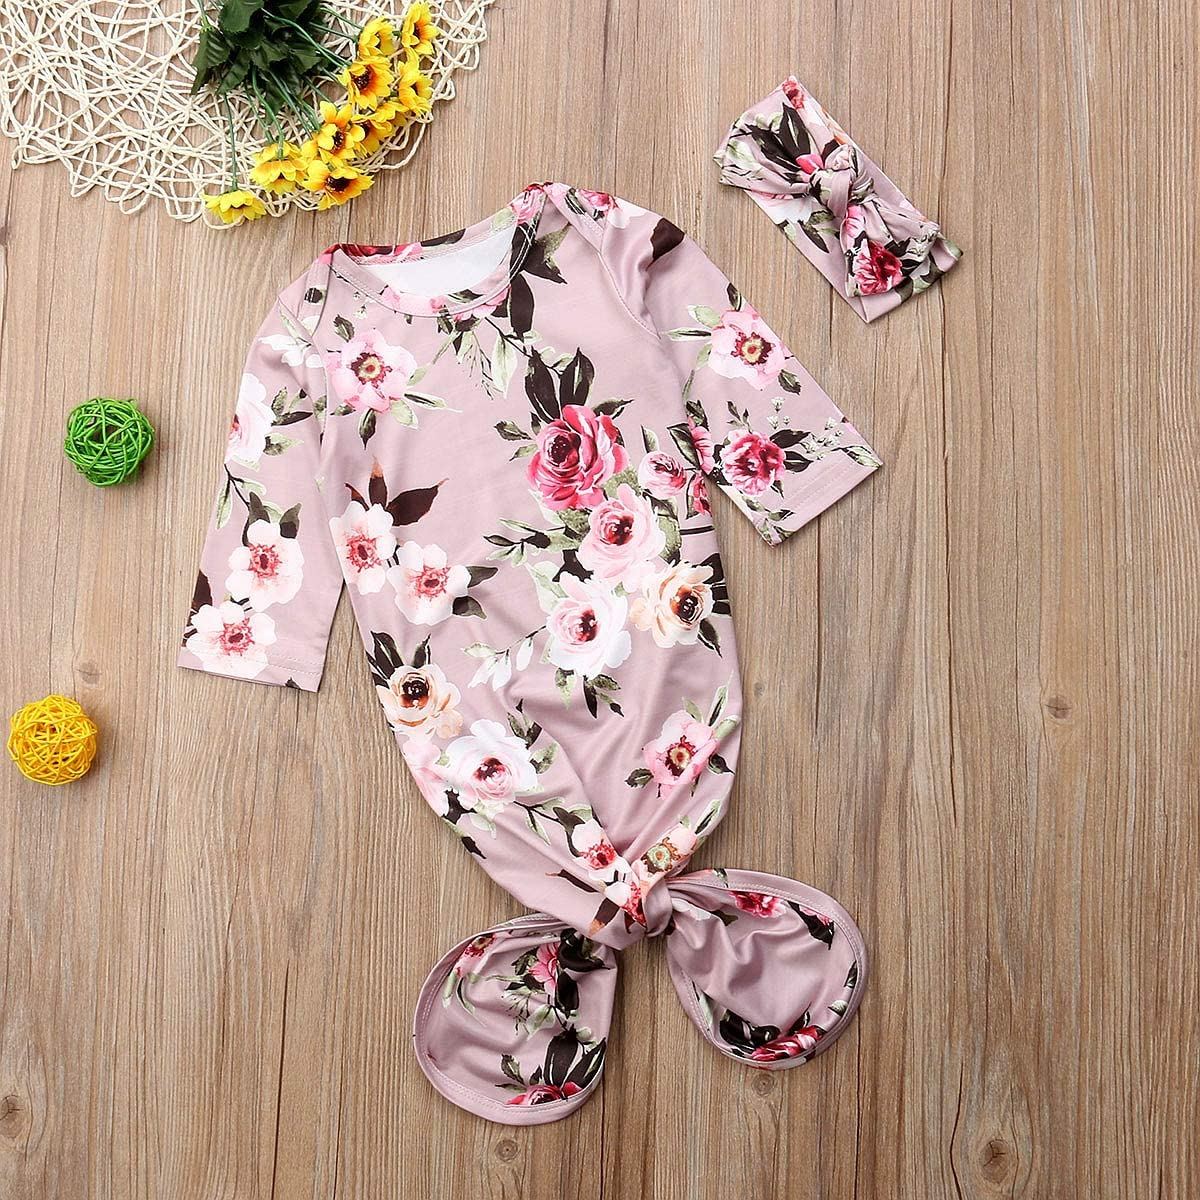 Newborn Baby Girls Floral Knotted Sleeper Infant Blanket Set with Headband Hat